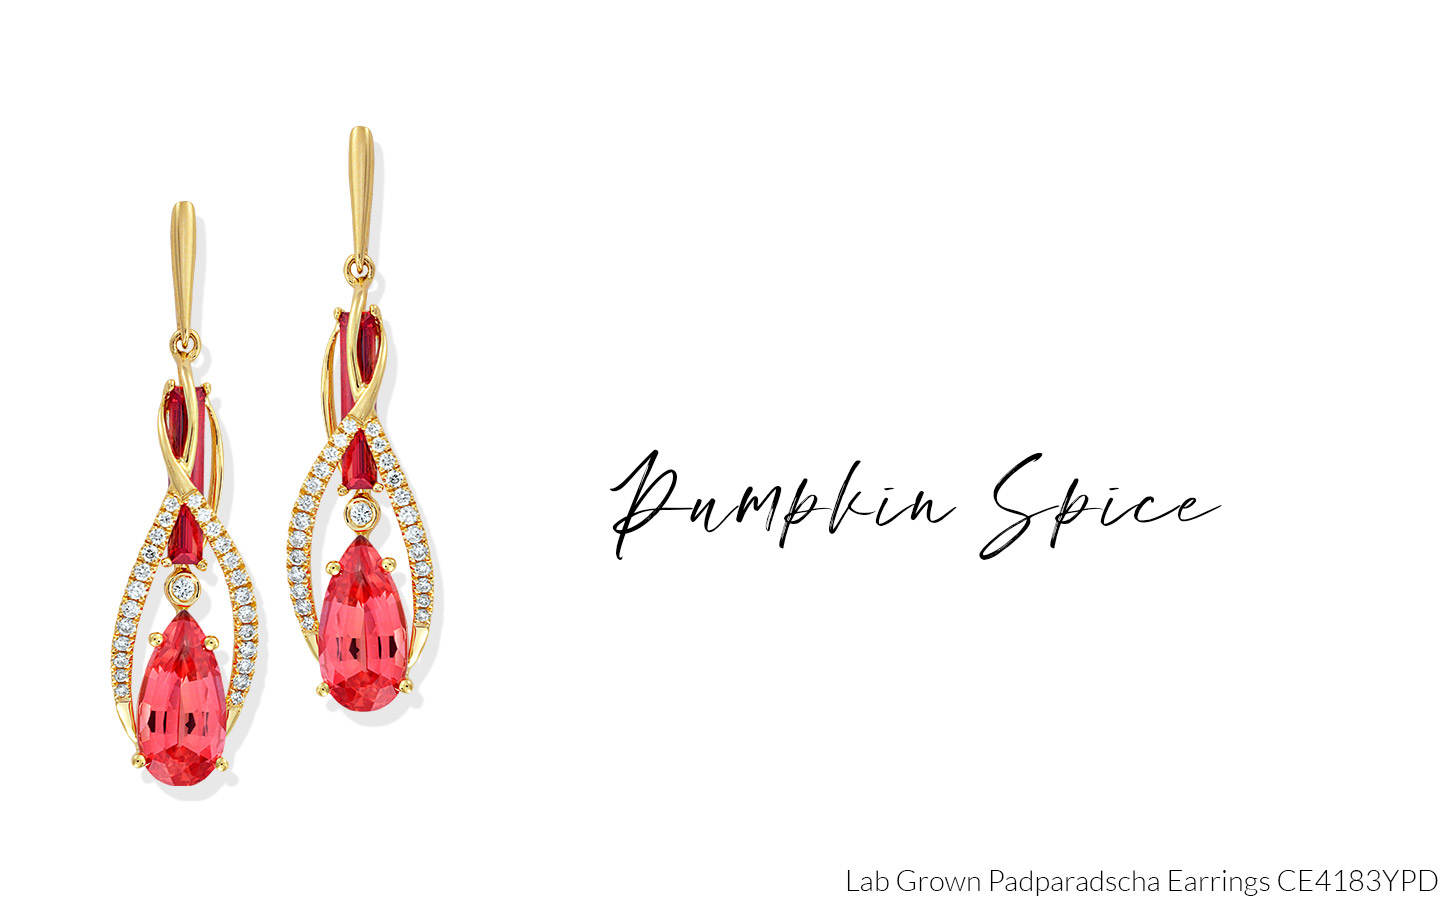 Chatham Lab Grown Padparadscha Earrings